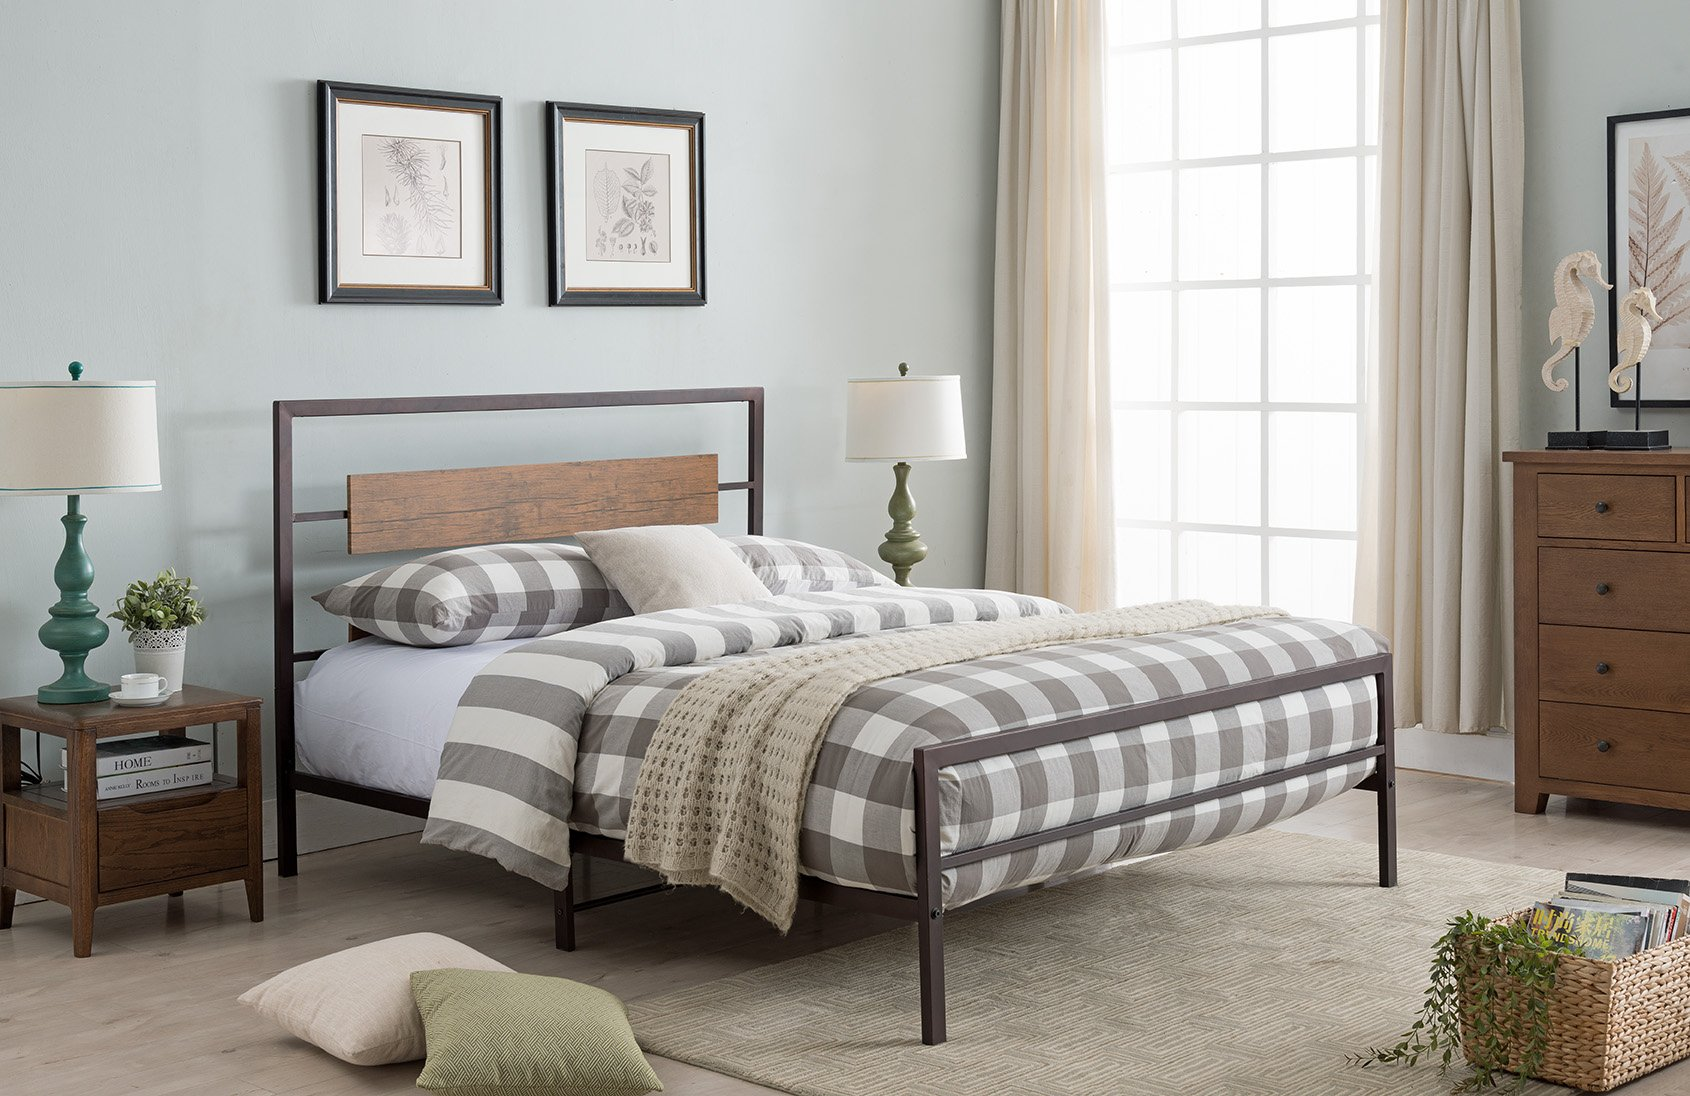 Kings Brand Furniture – Verona Pewter Metal/Walnut Wood Bed with Headboard & Footboard, King - Update your bedroom with the Verona Platform Bed, Headboard, Footboard, Rails, Slats & Center Support. This bed features a strong construction with slats that form a sturdy base to keep your mattress in good shape for longer. Featuring a metal frame with a rectangular reclaimed wood look. - bedroom-furniture, bed-frames, bedroom - 811VEYu5ybL -